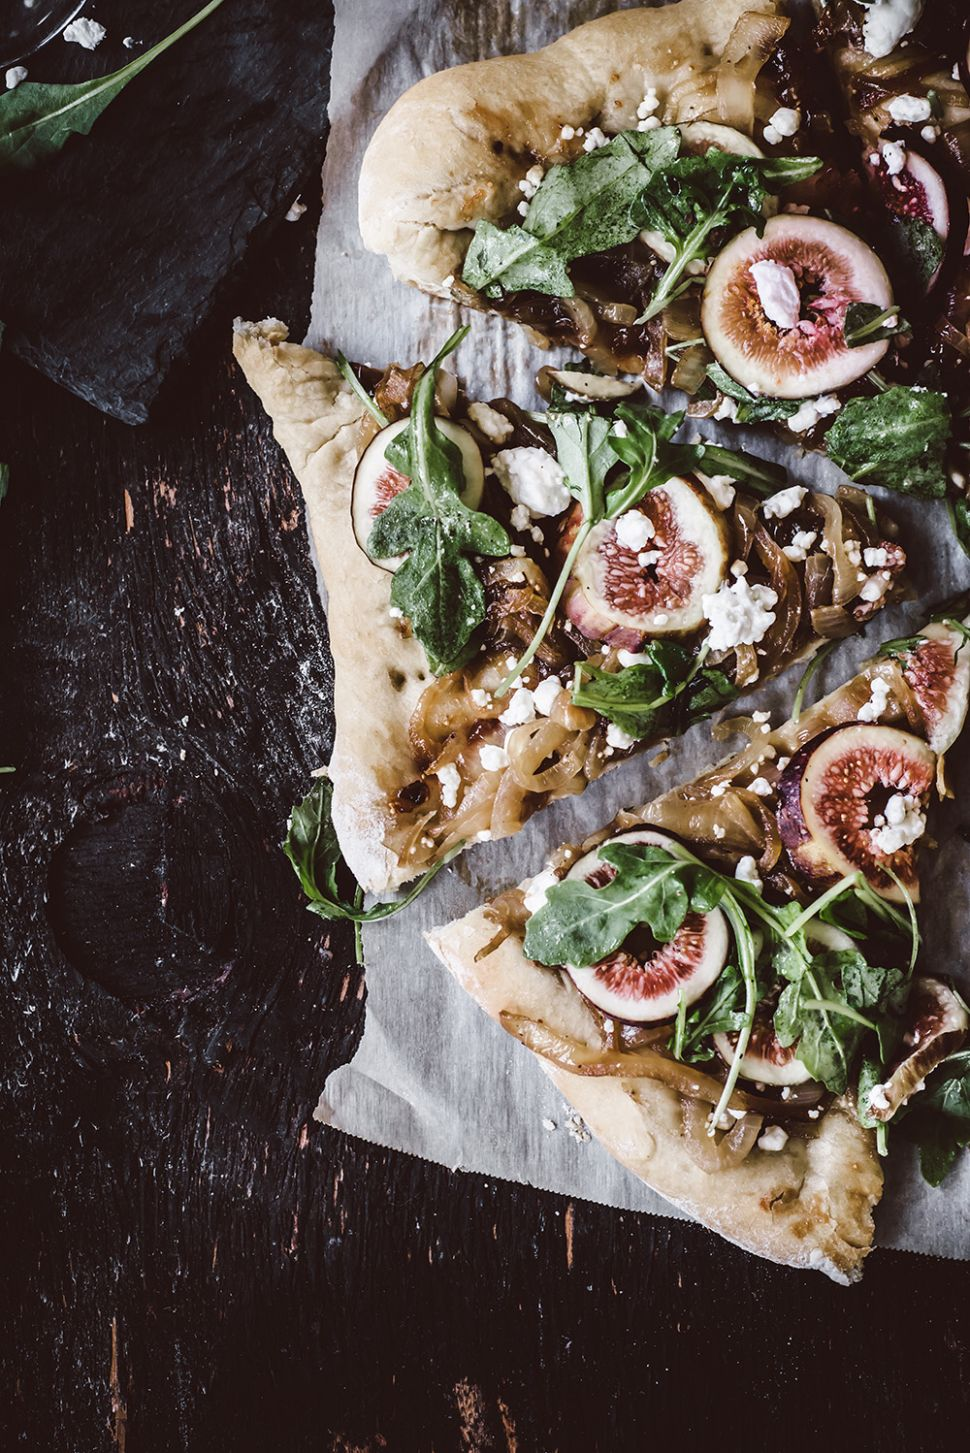 FIG AND SERRANO JAM PIZZA WITH GOAT CHEESE - Pizza Recipes With Jam